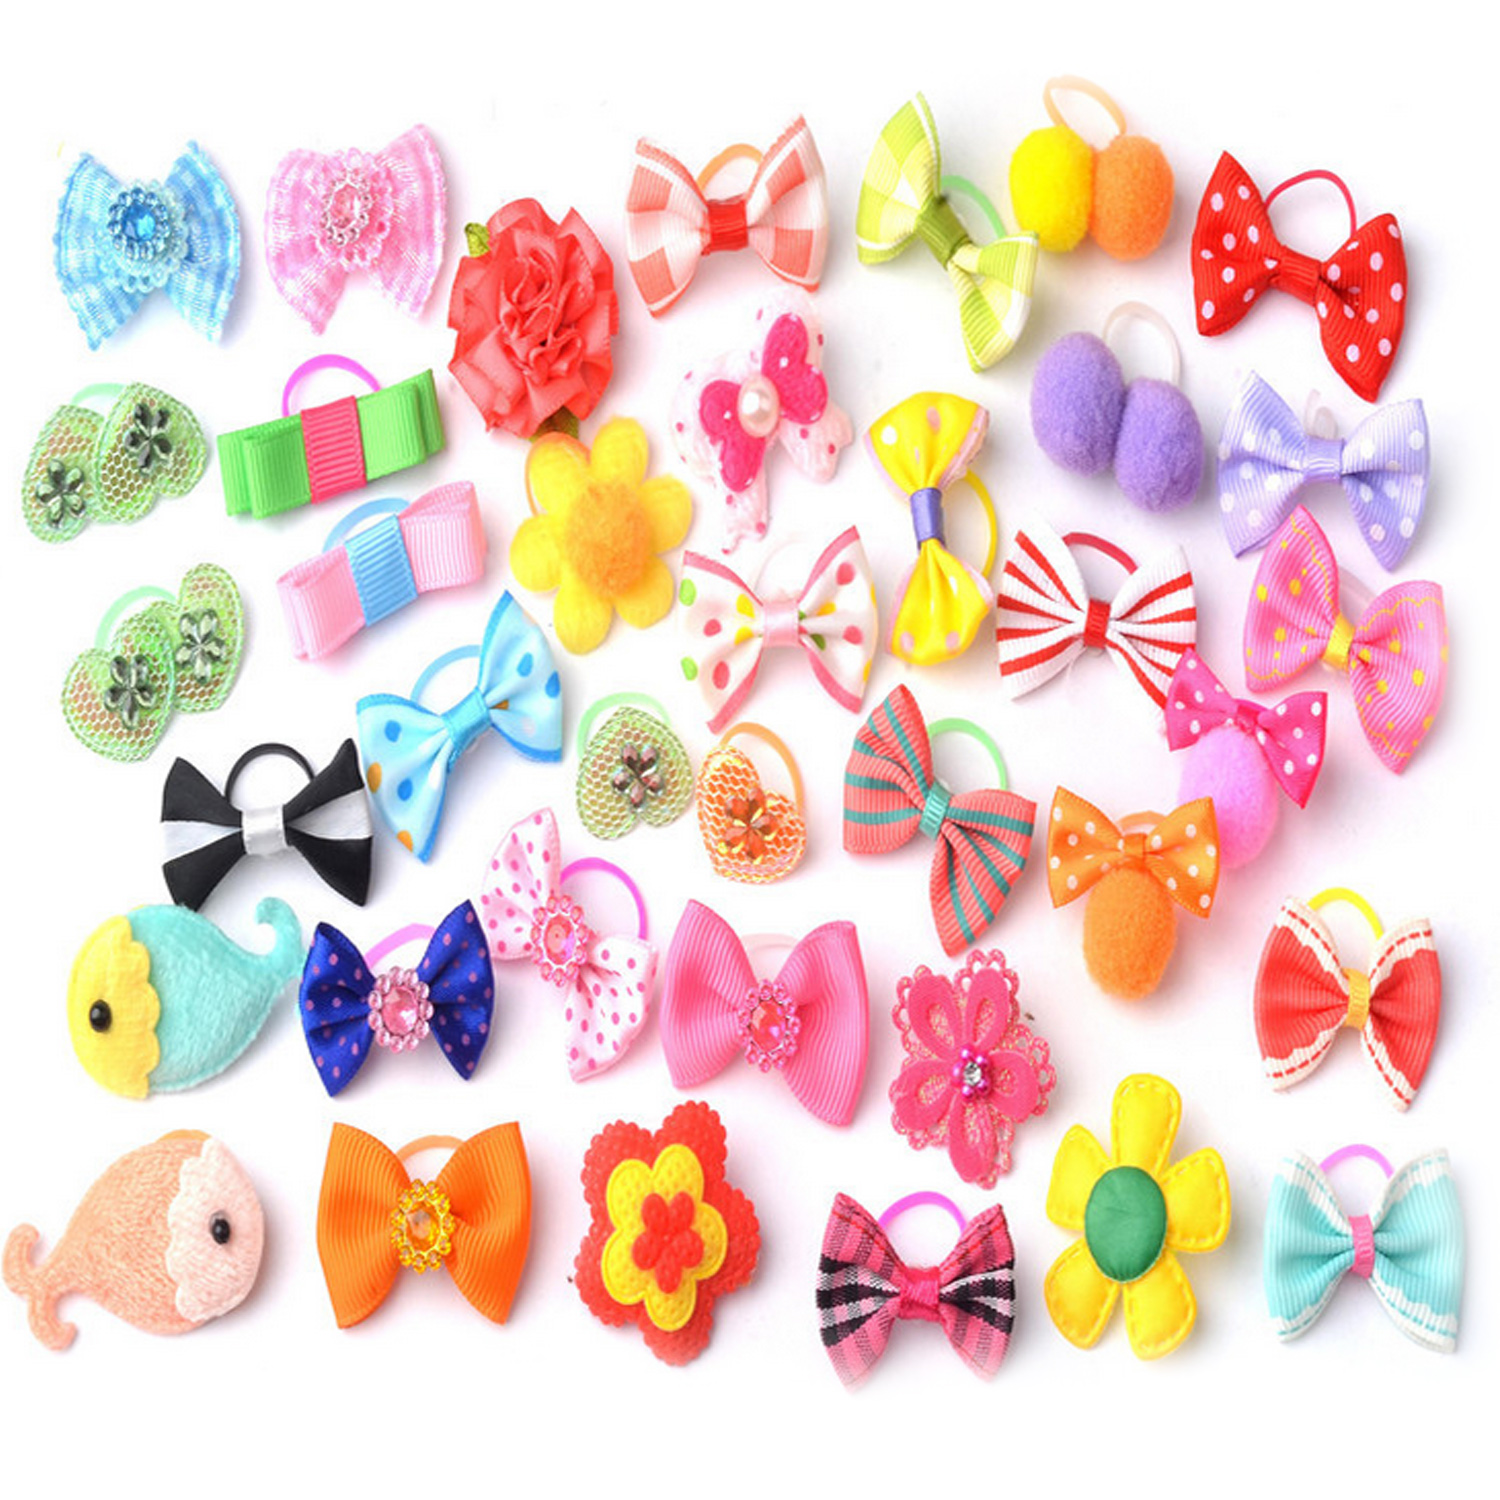 20 PCS Pet Hair Bows Hair Band Dog Puppy Cat Grooming Accessories Random Color and Style(China (Mainland))